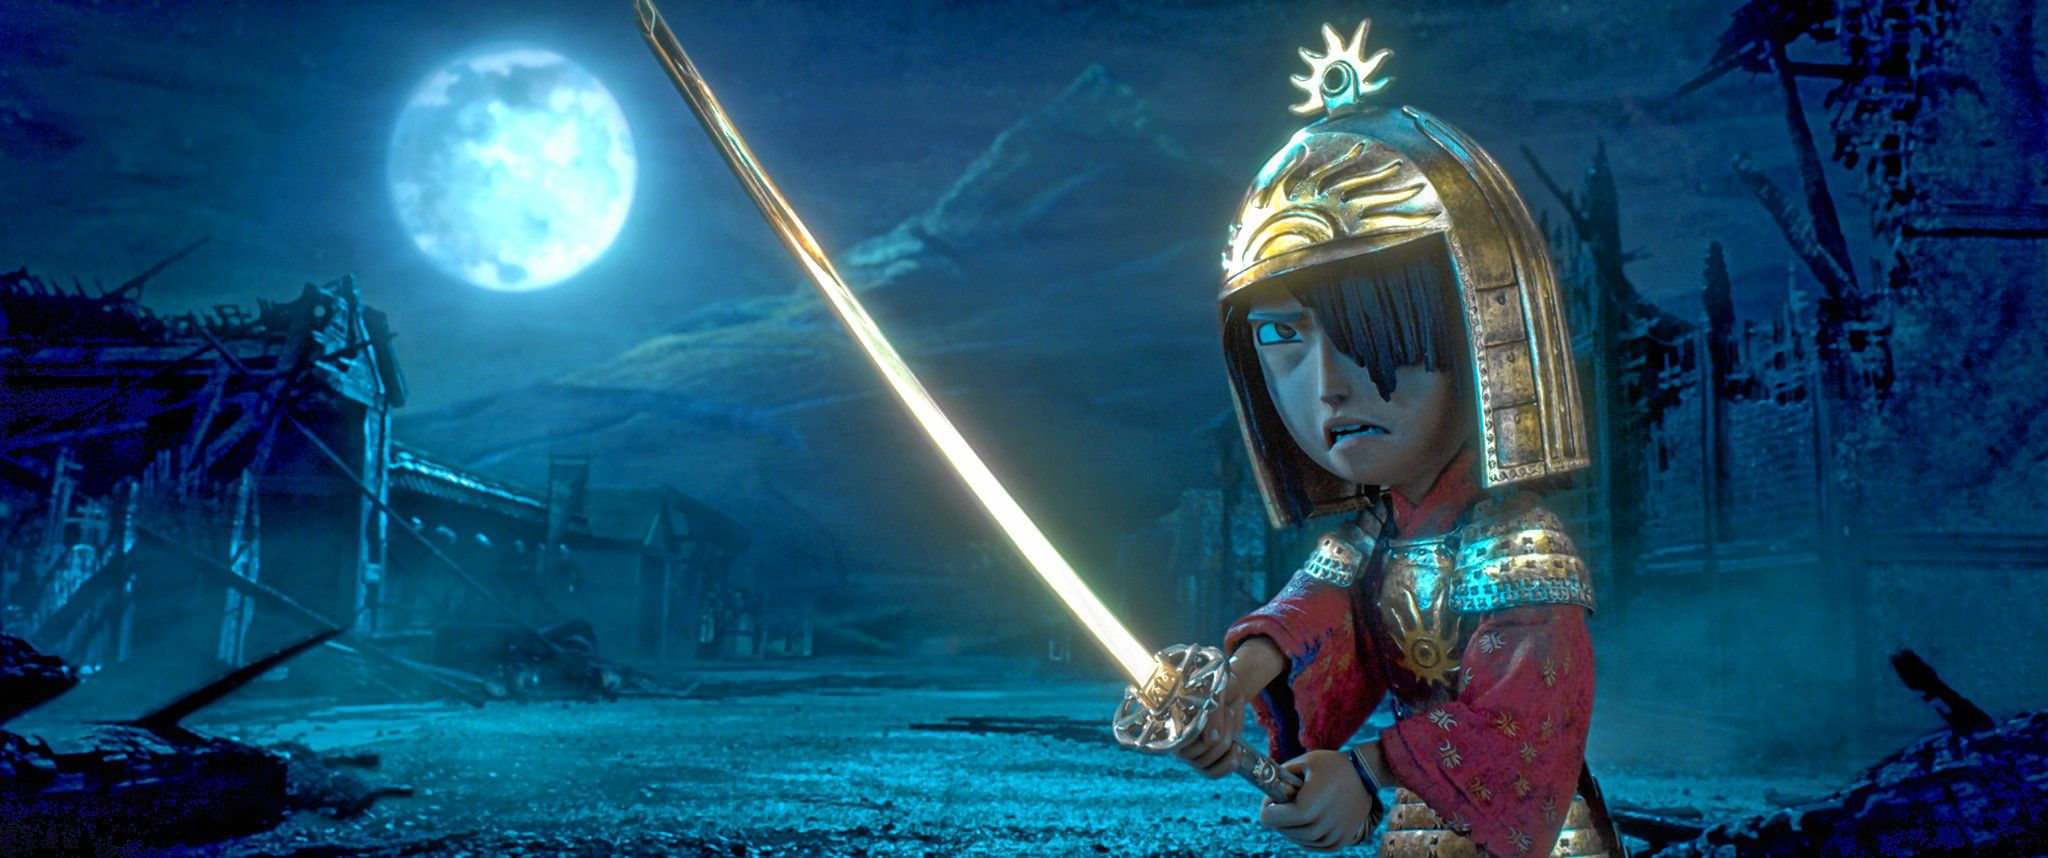 Cinemadope: These New Kid Flicks Aren't Just For Kids